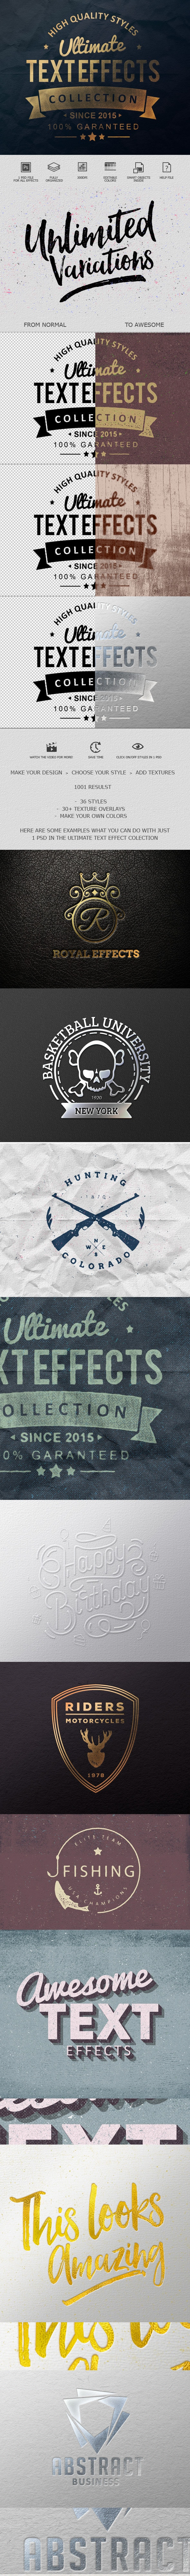 Ultimate Text Effect Collection - Text Effects Styles